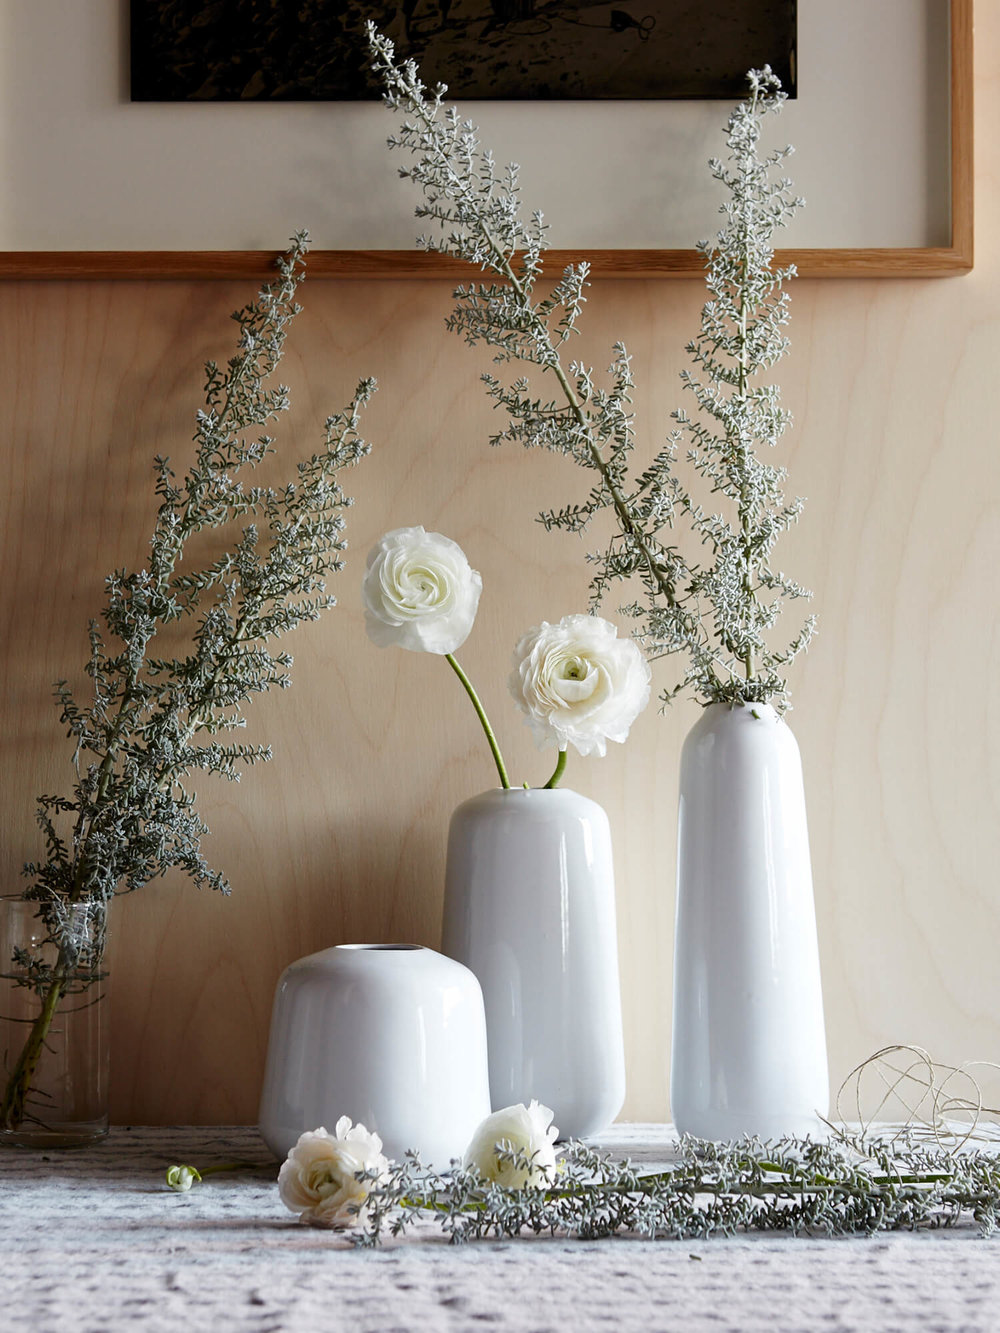 Home Address white vases.jpg